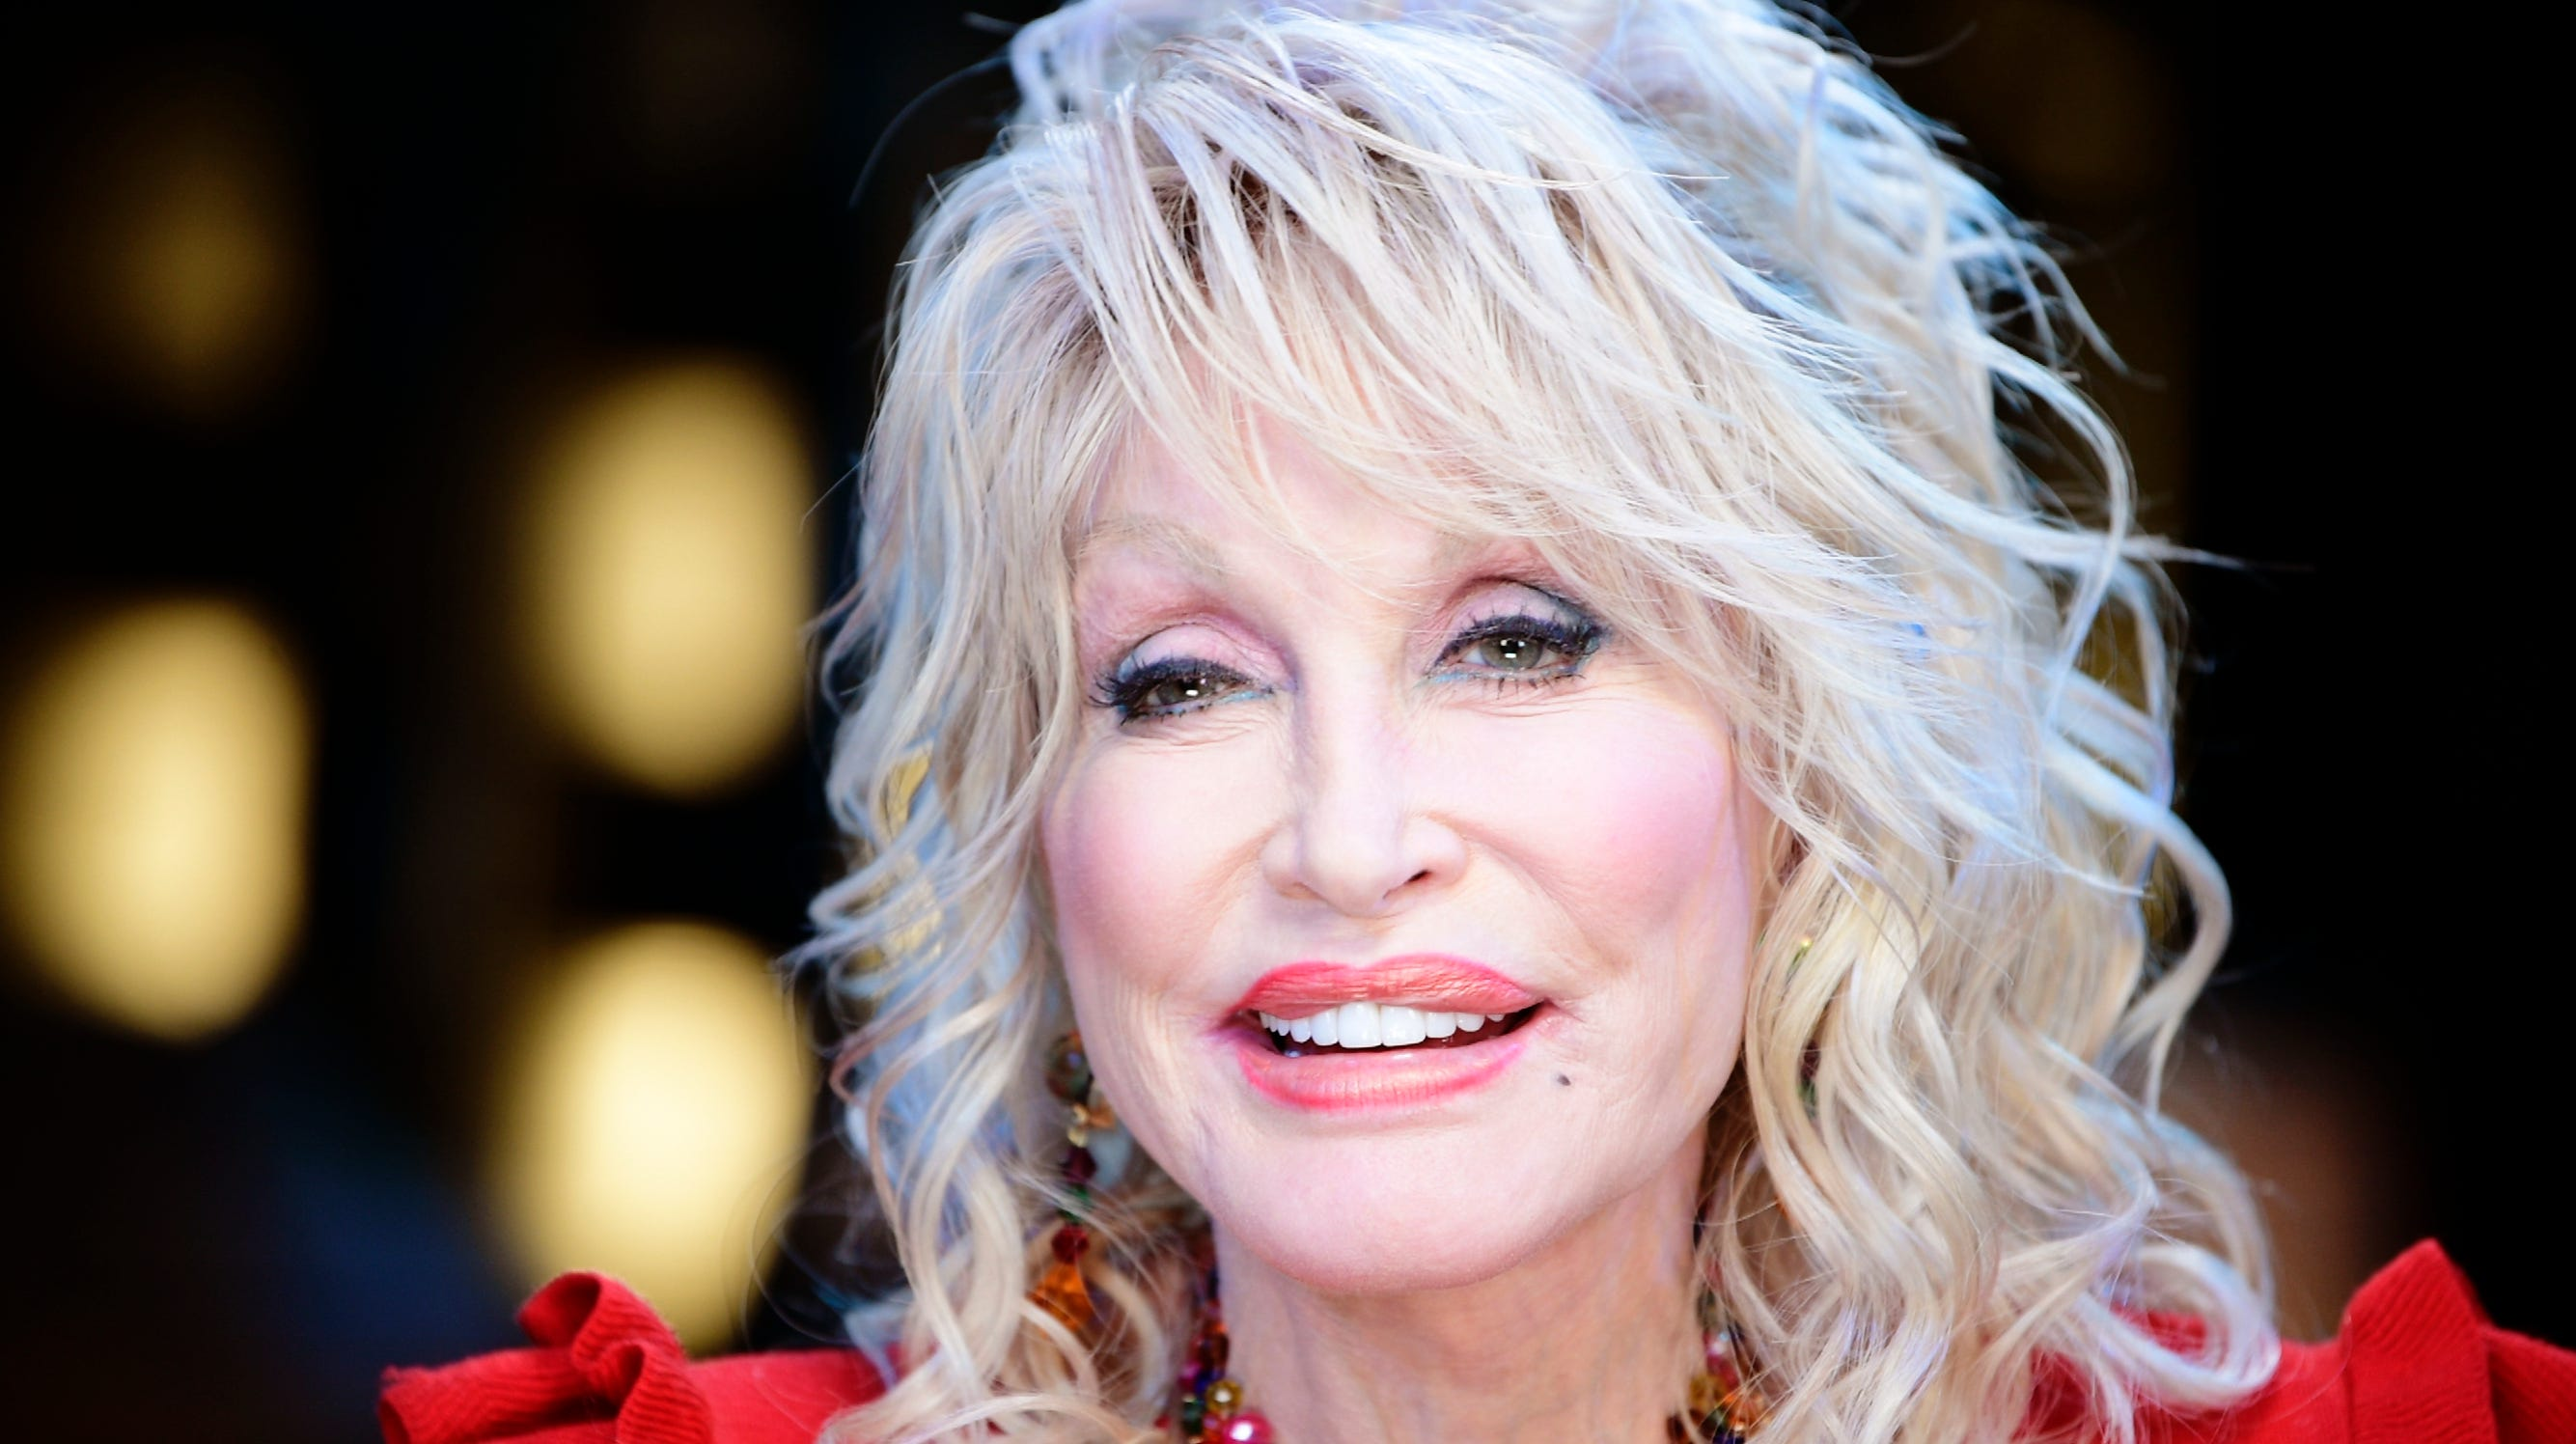 'Only fitting': Dolly Parton donates $200,000 to Sevier County volunteer fire departments